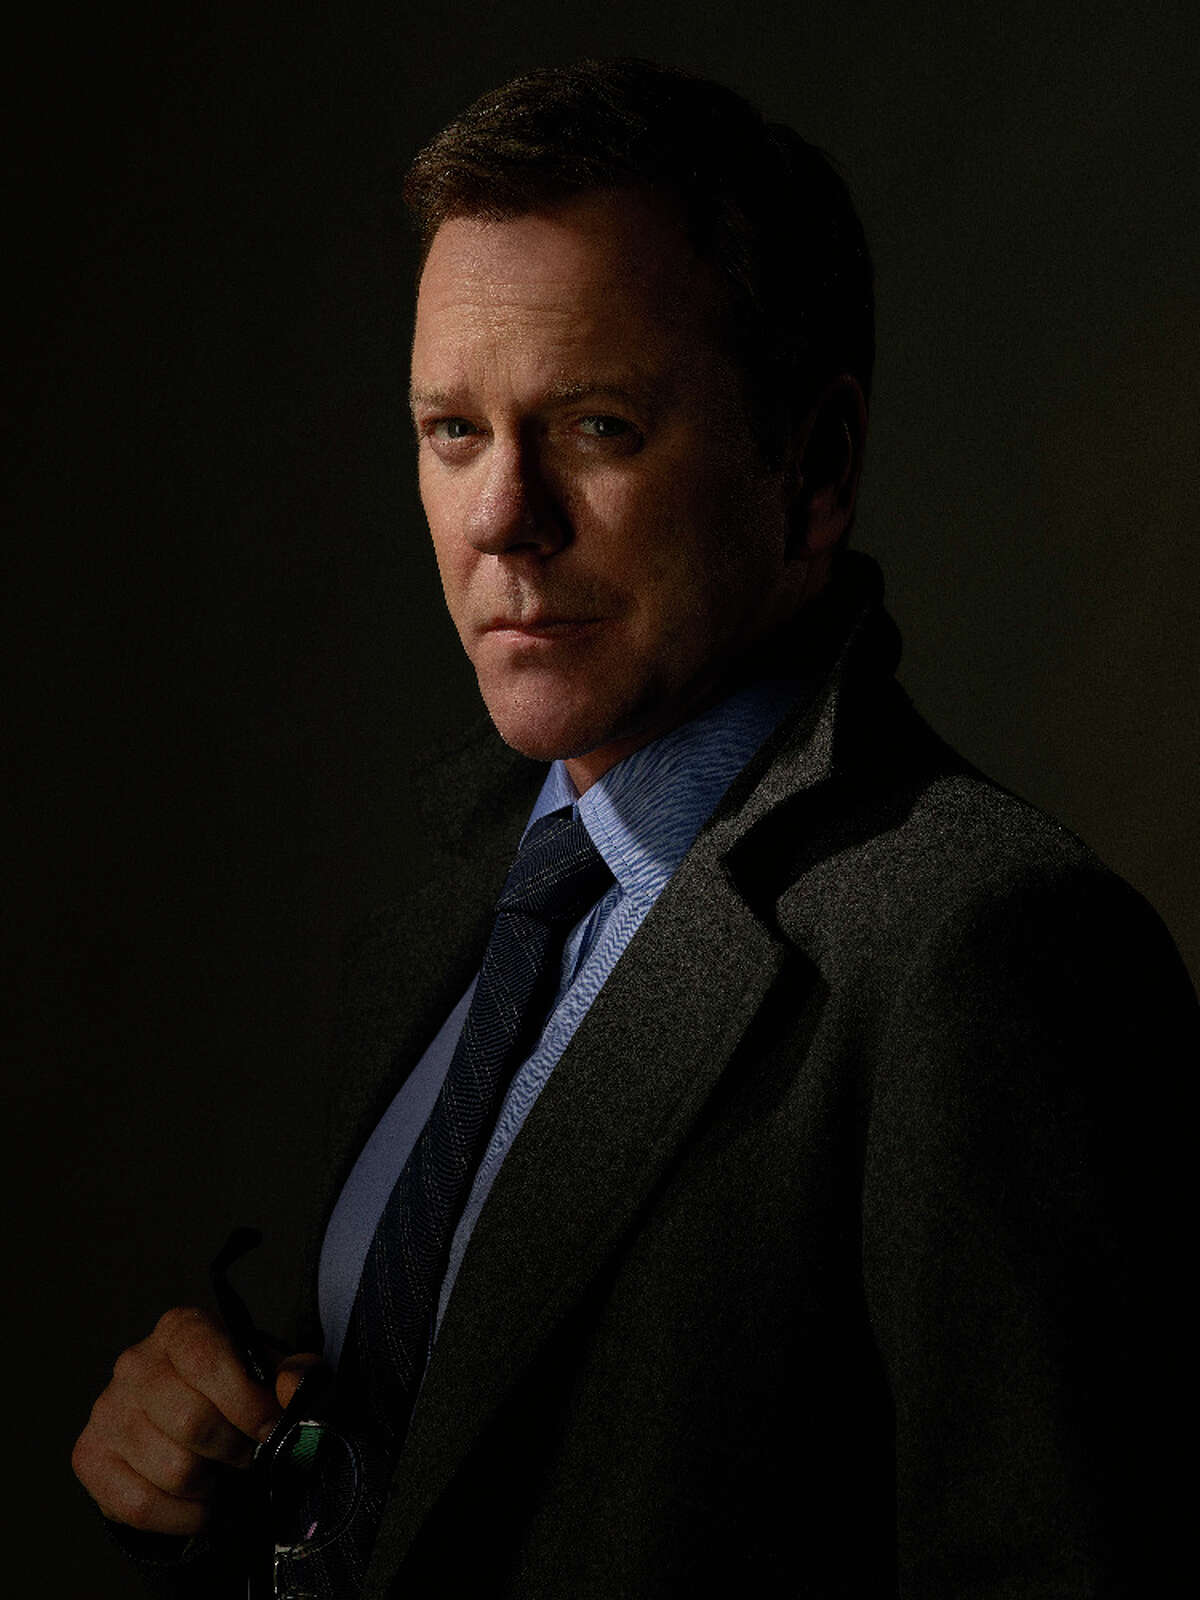 2. DESIGNATED SURVIVOR: In this new political drama Kiefer Sutherland dons a pair of smart guy glasses to play a low level cabinet member who suddenly becomes President of the United States after a cataclysmic event. Jack Bauer he is not, and that's okay. This is such an obvious idea for a series or a movie, I'm shocked it hasn't been done already. (It hasn't been done already, right?) Watch the trailer here.